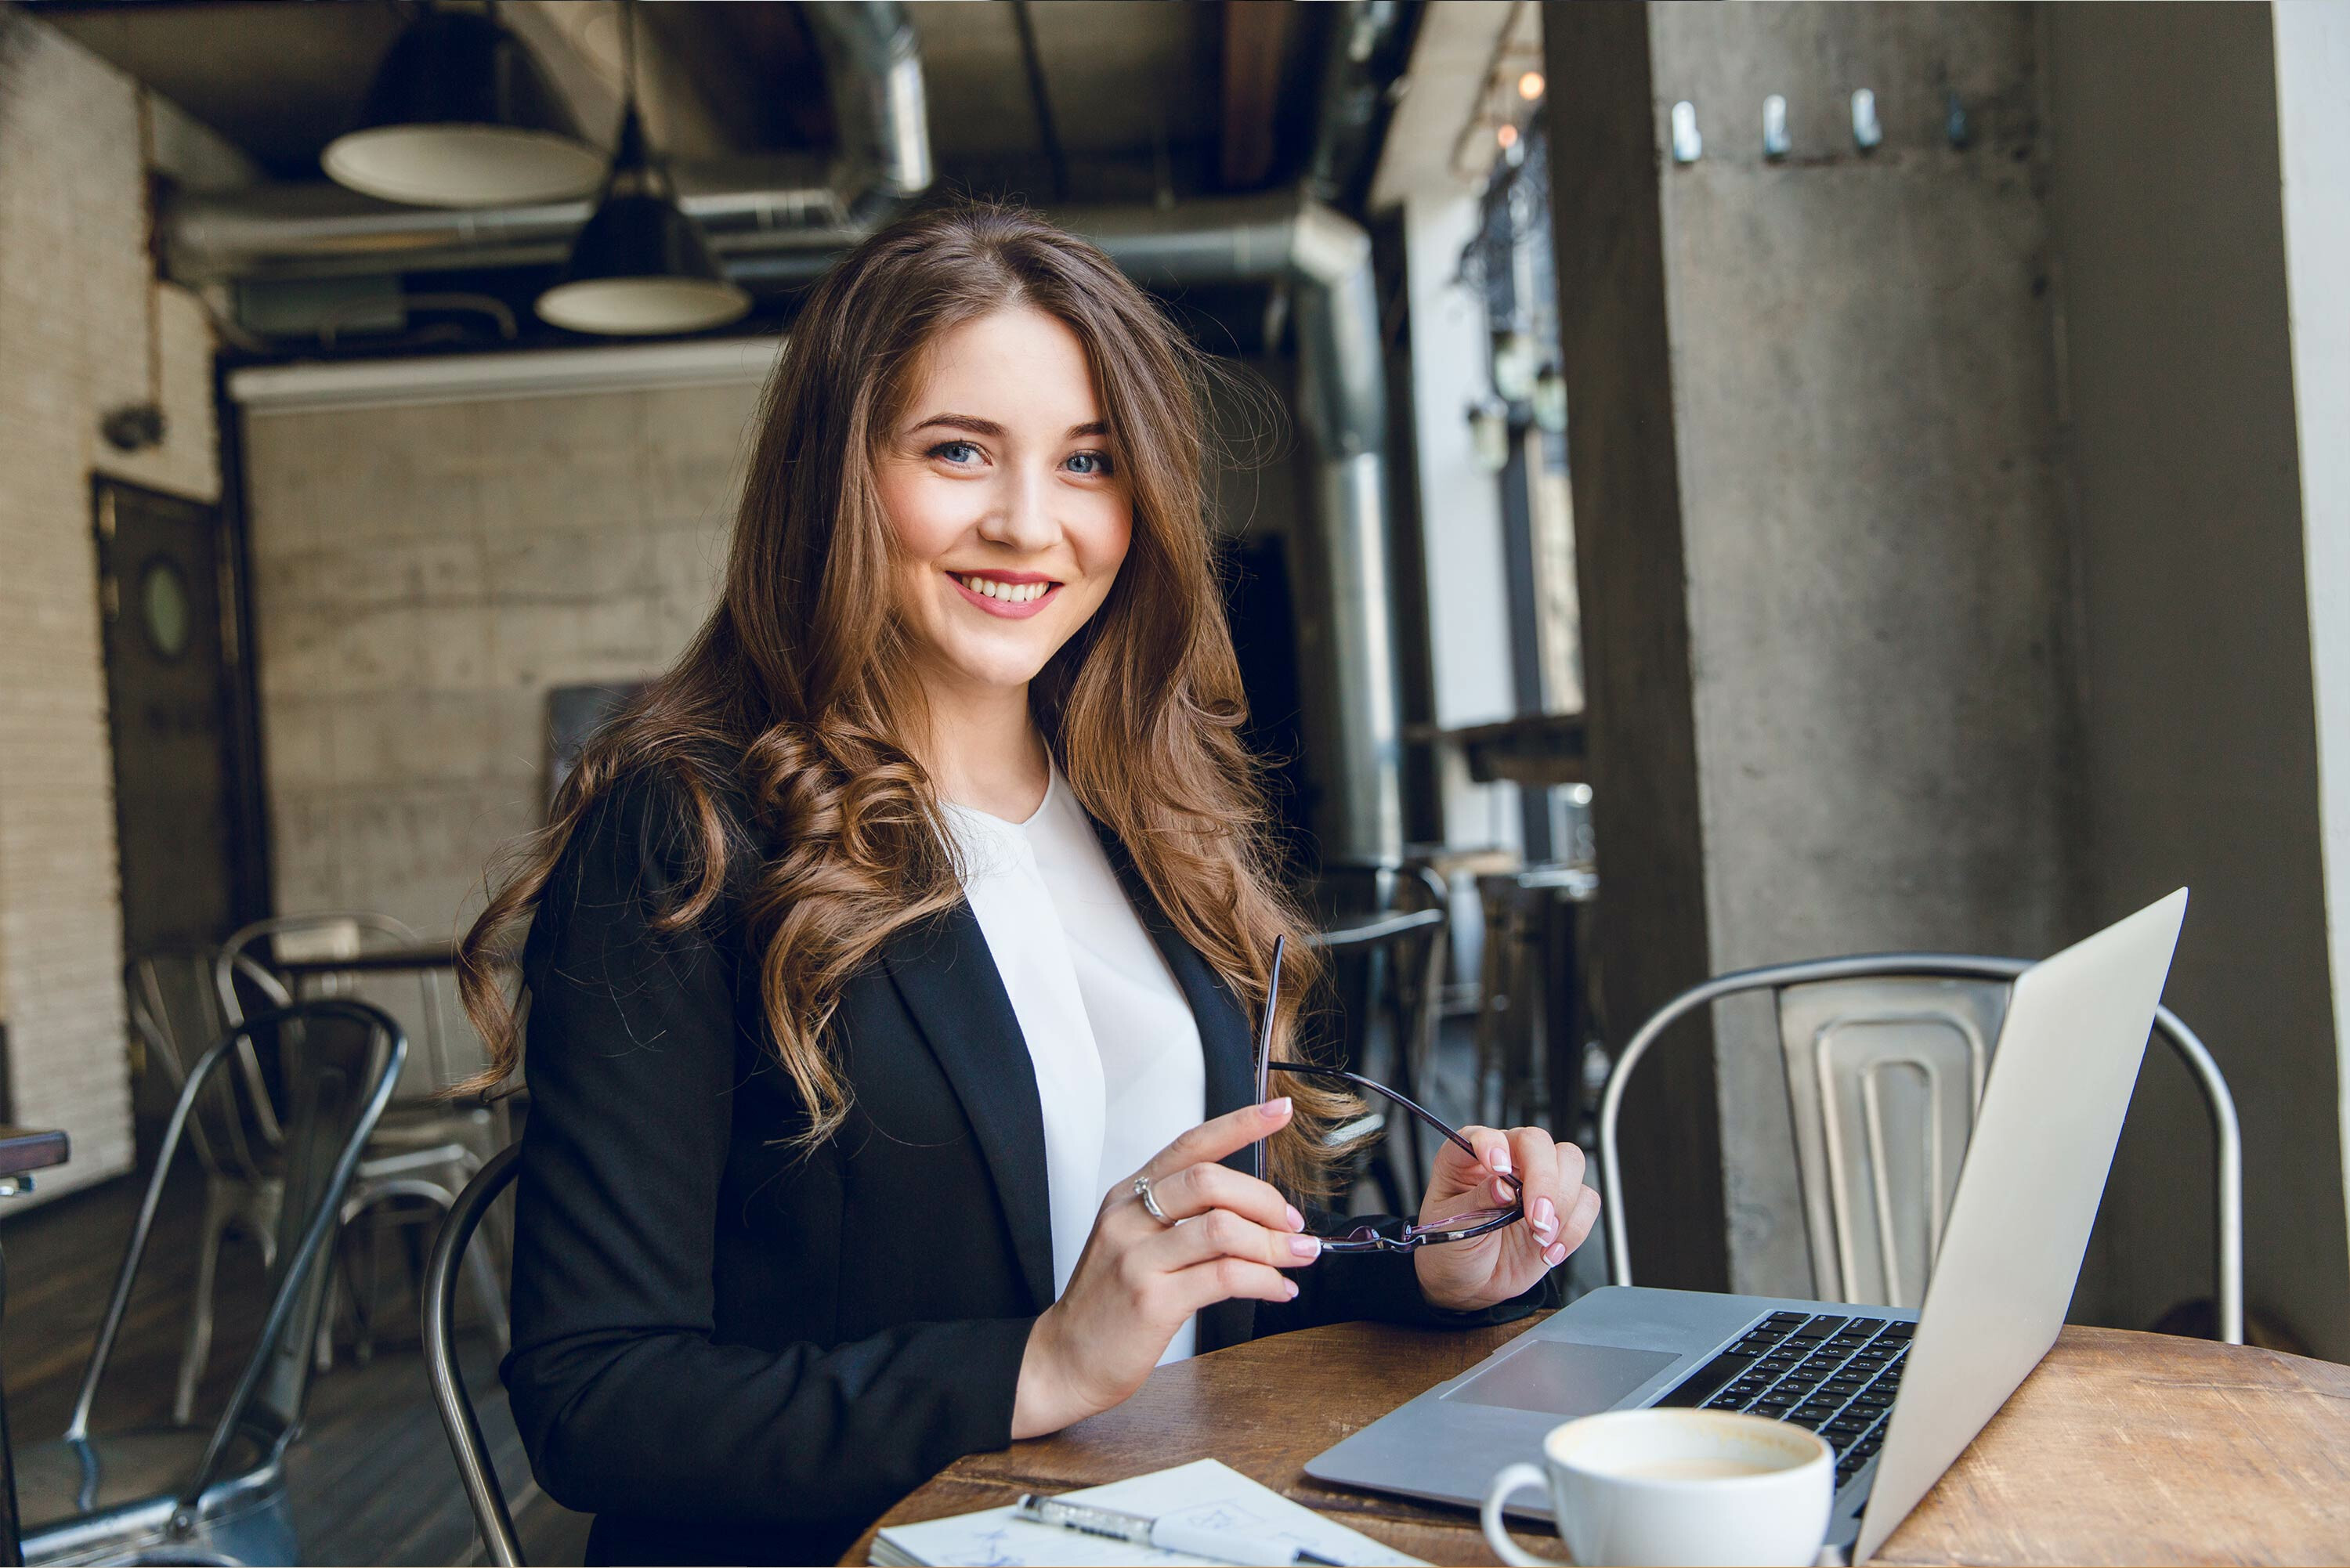 woman business owner smiling